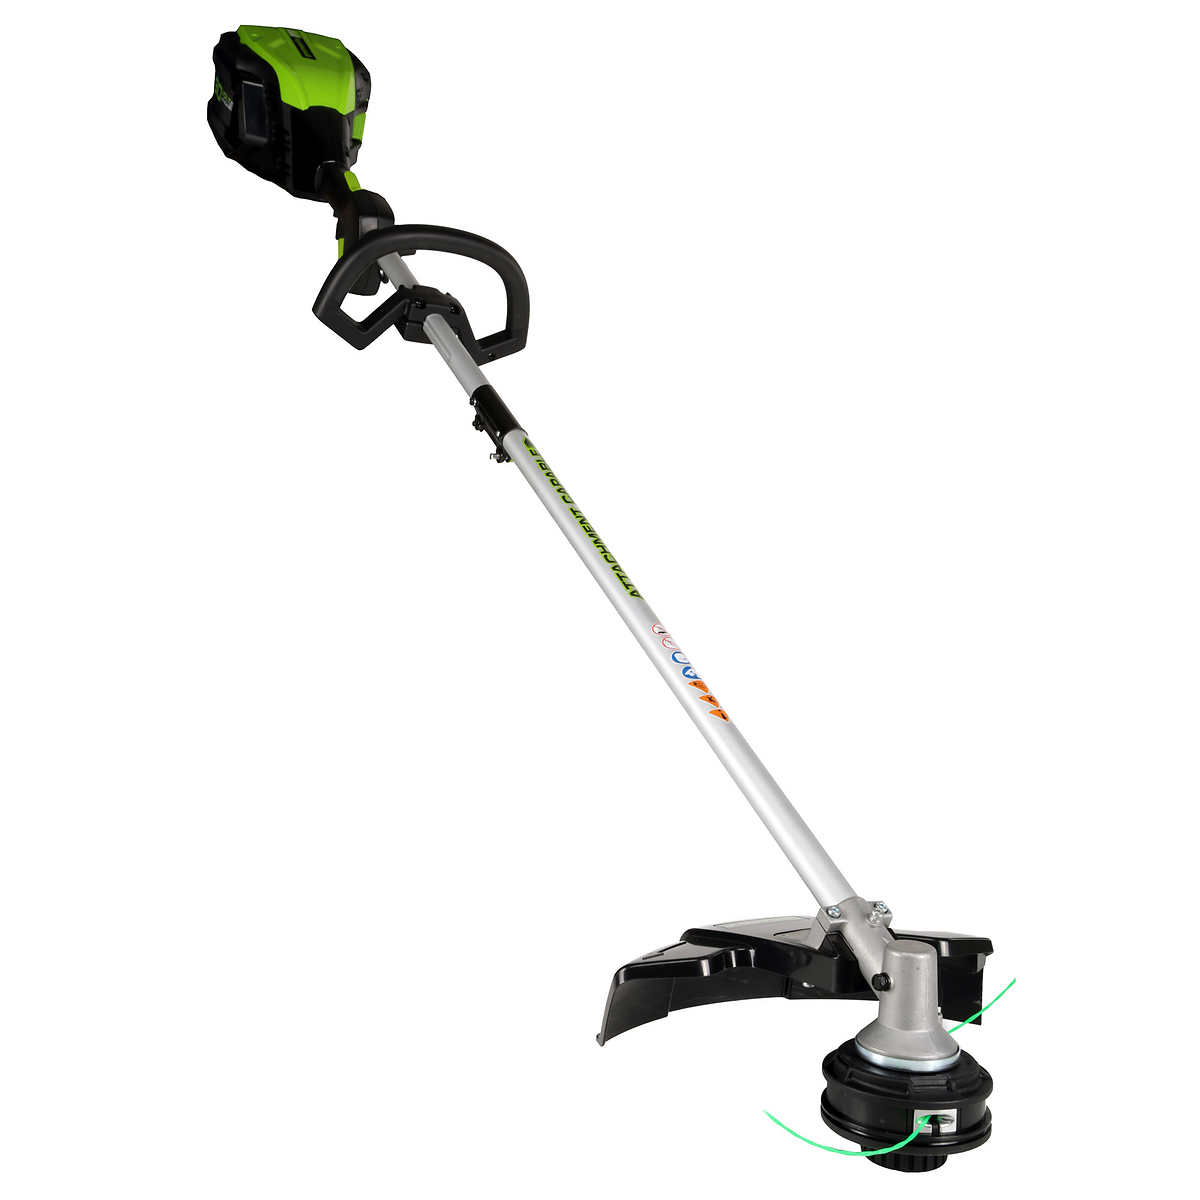 Greenworks Pro 16 in  80V Cordless Grass Trimmer, Bare Tool Only